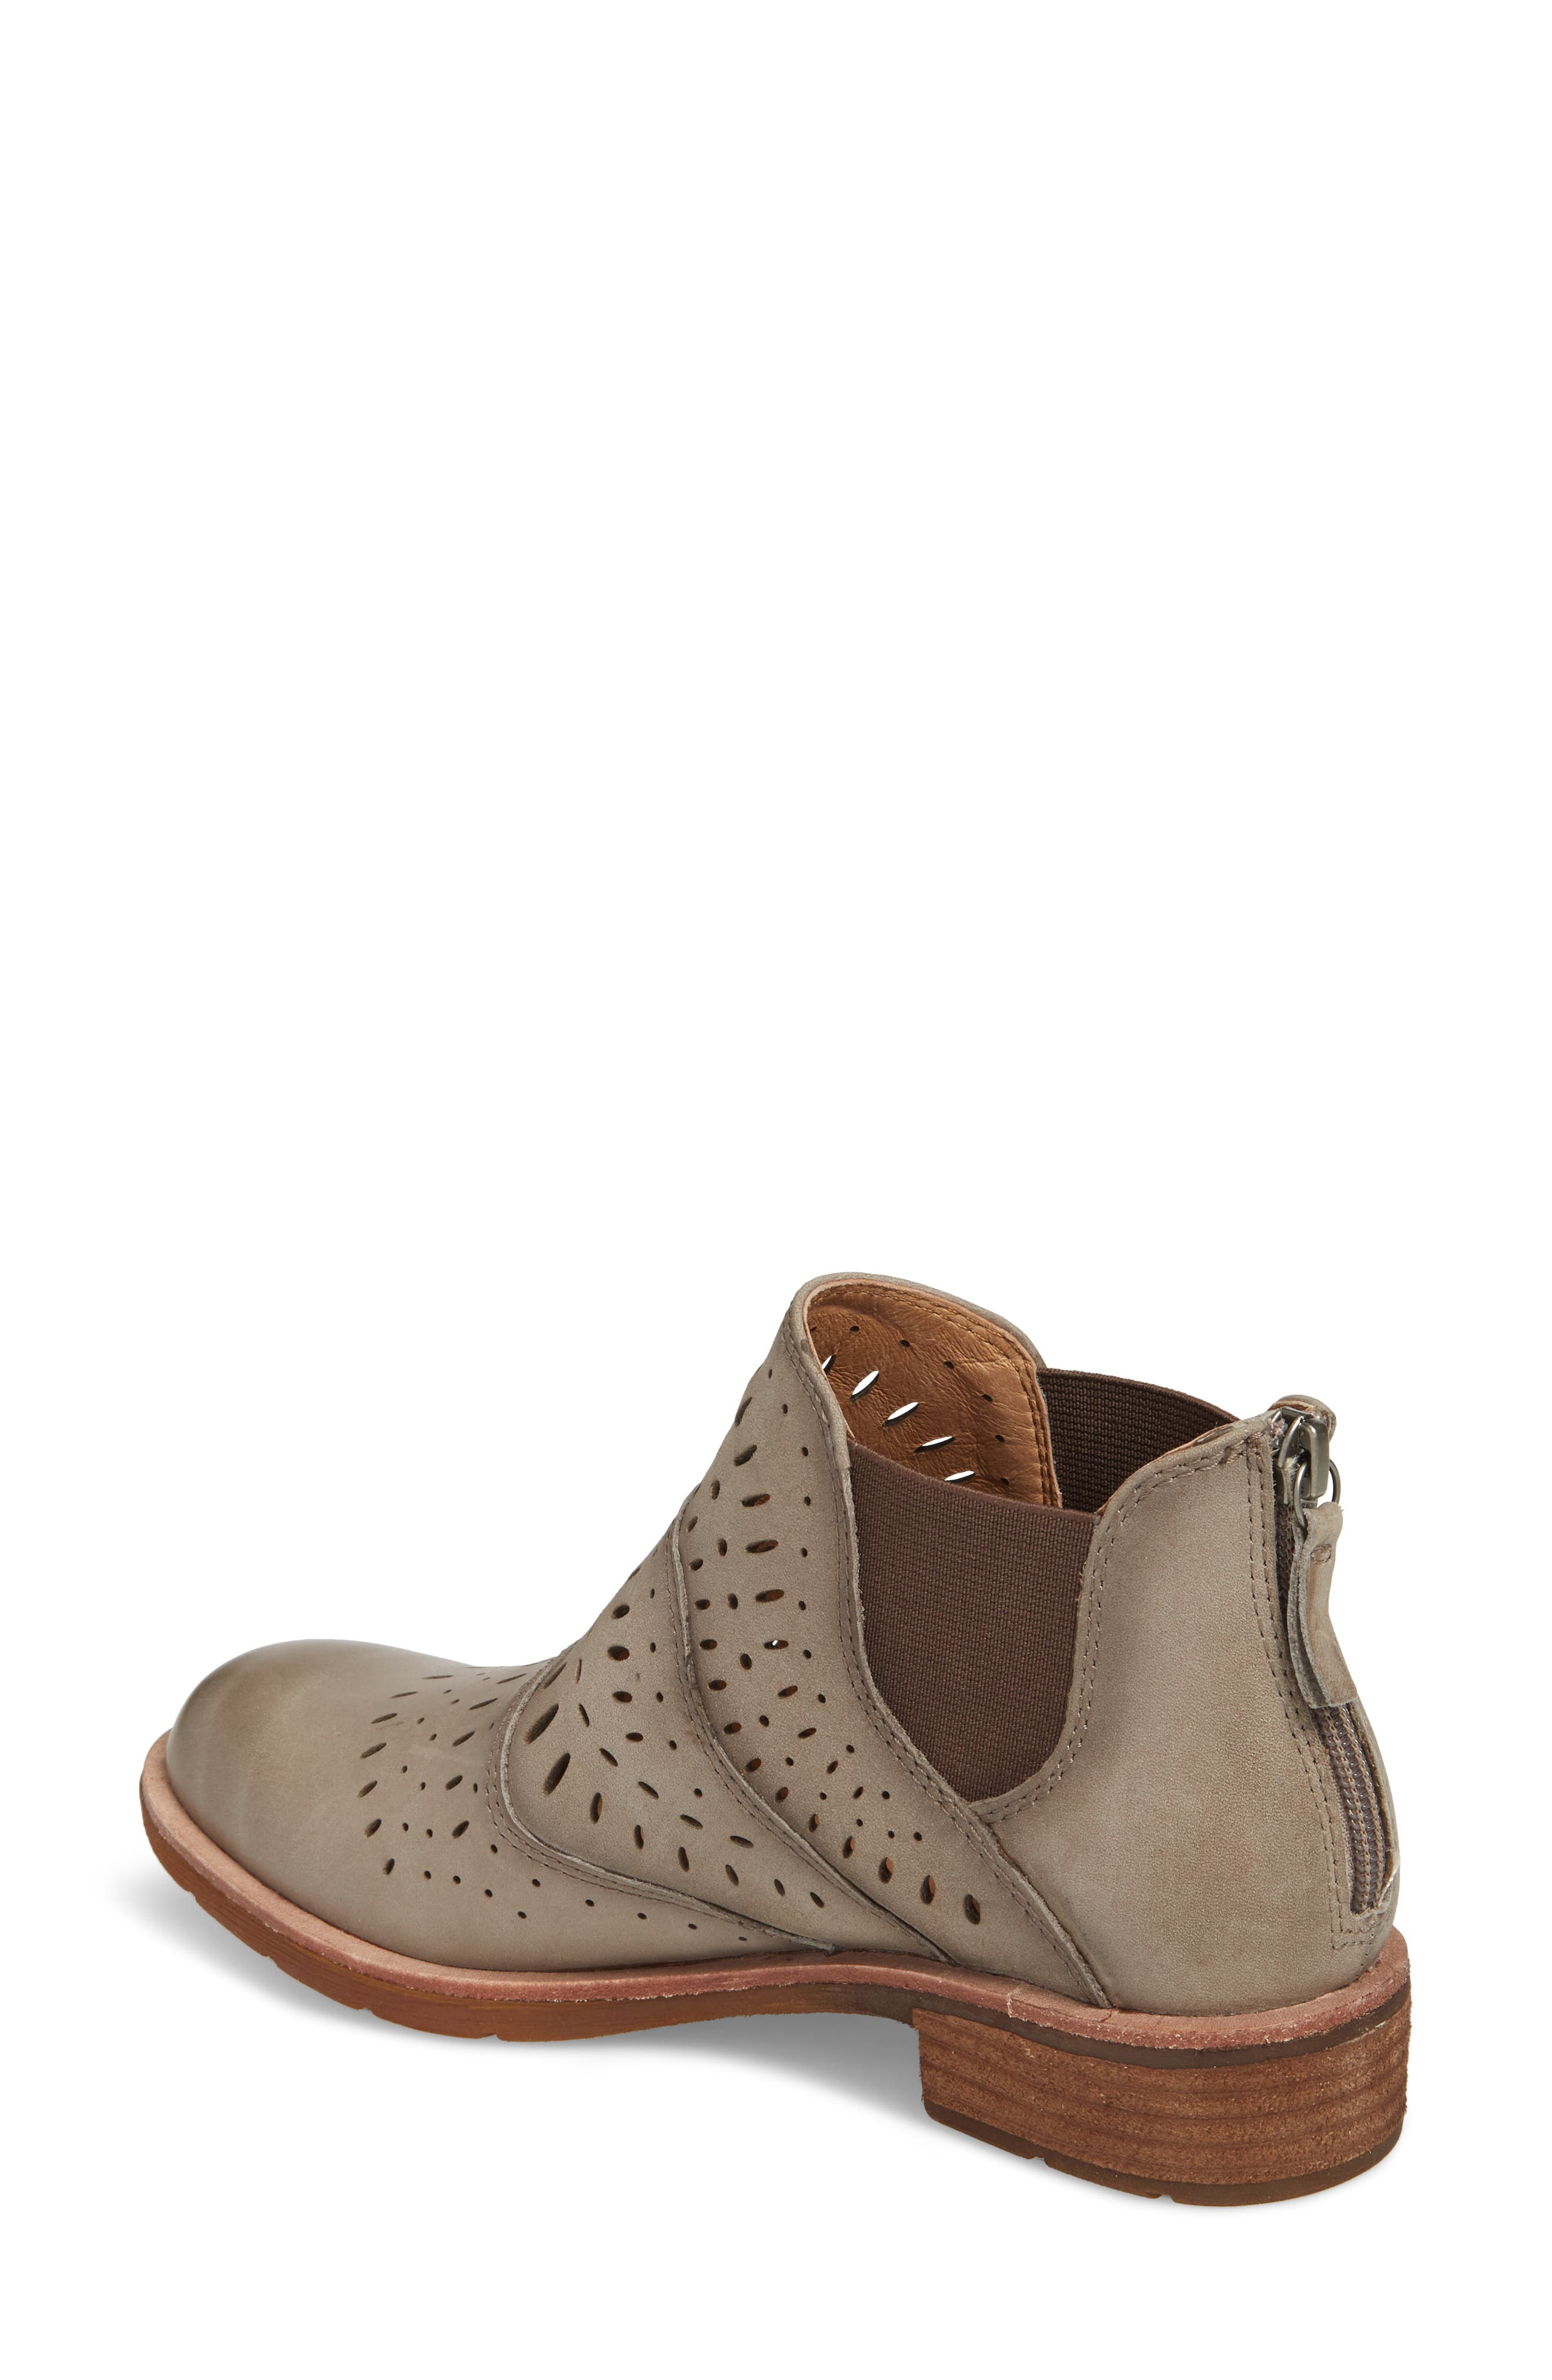 Brenley Bootie,                             Alternate thumbnail 2, color,                             PAPER MACHE GREY LEATHER